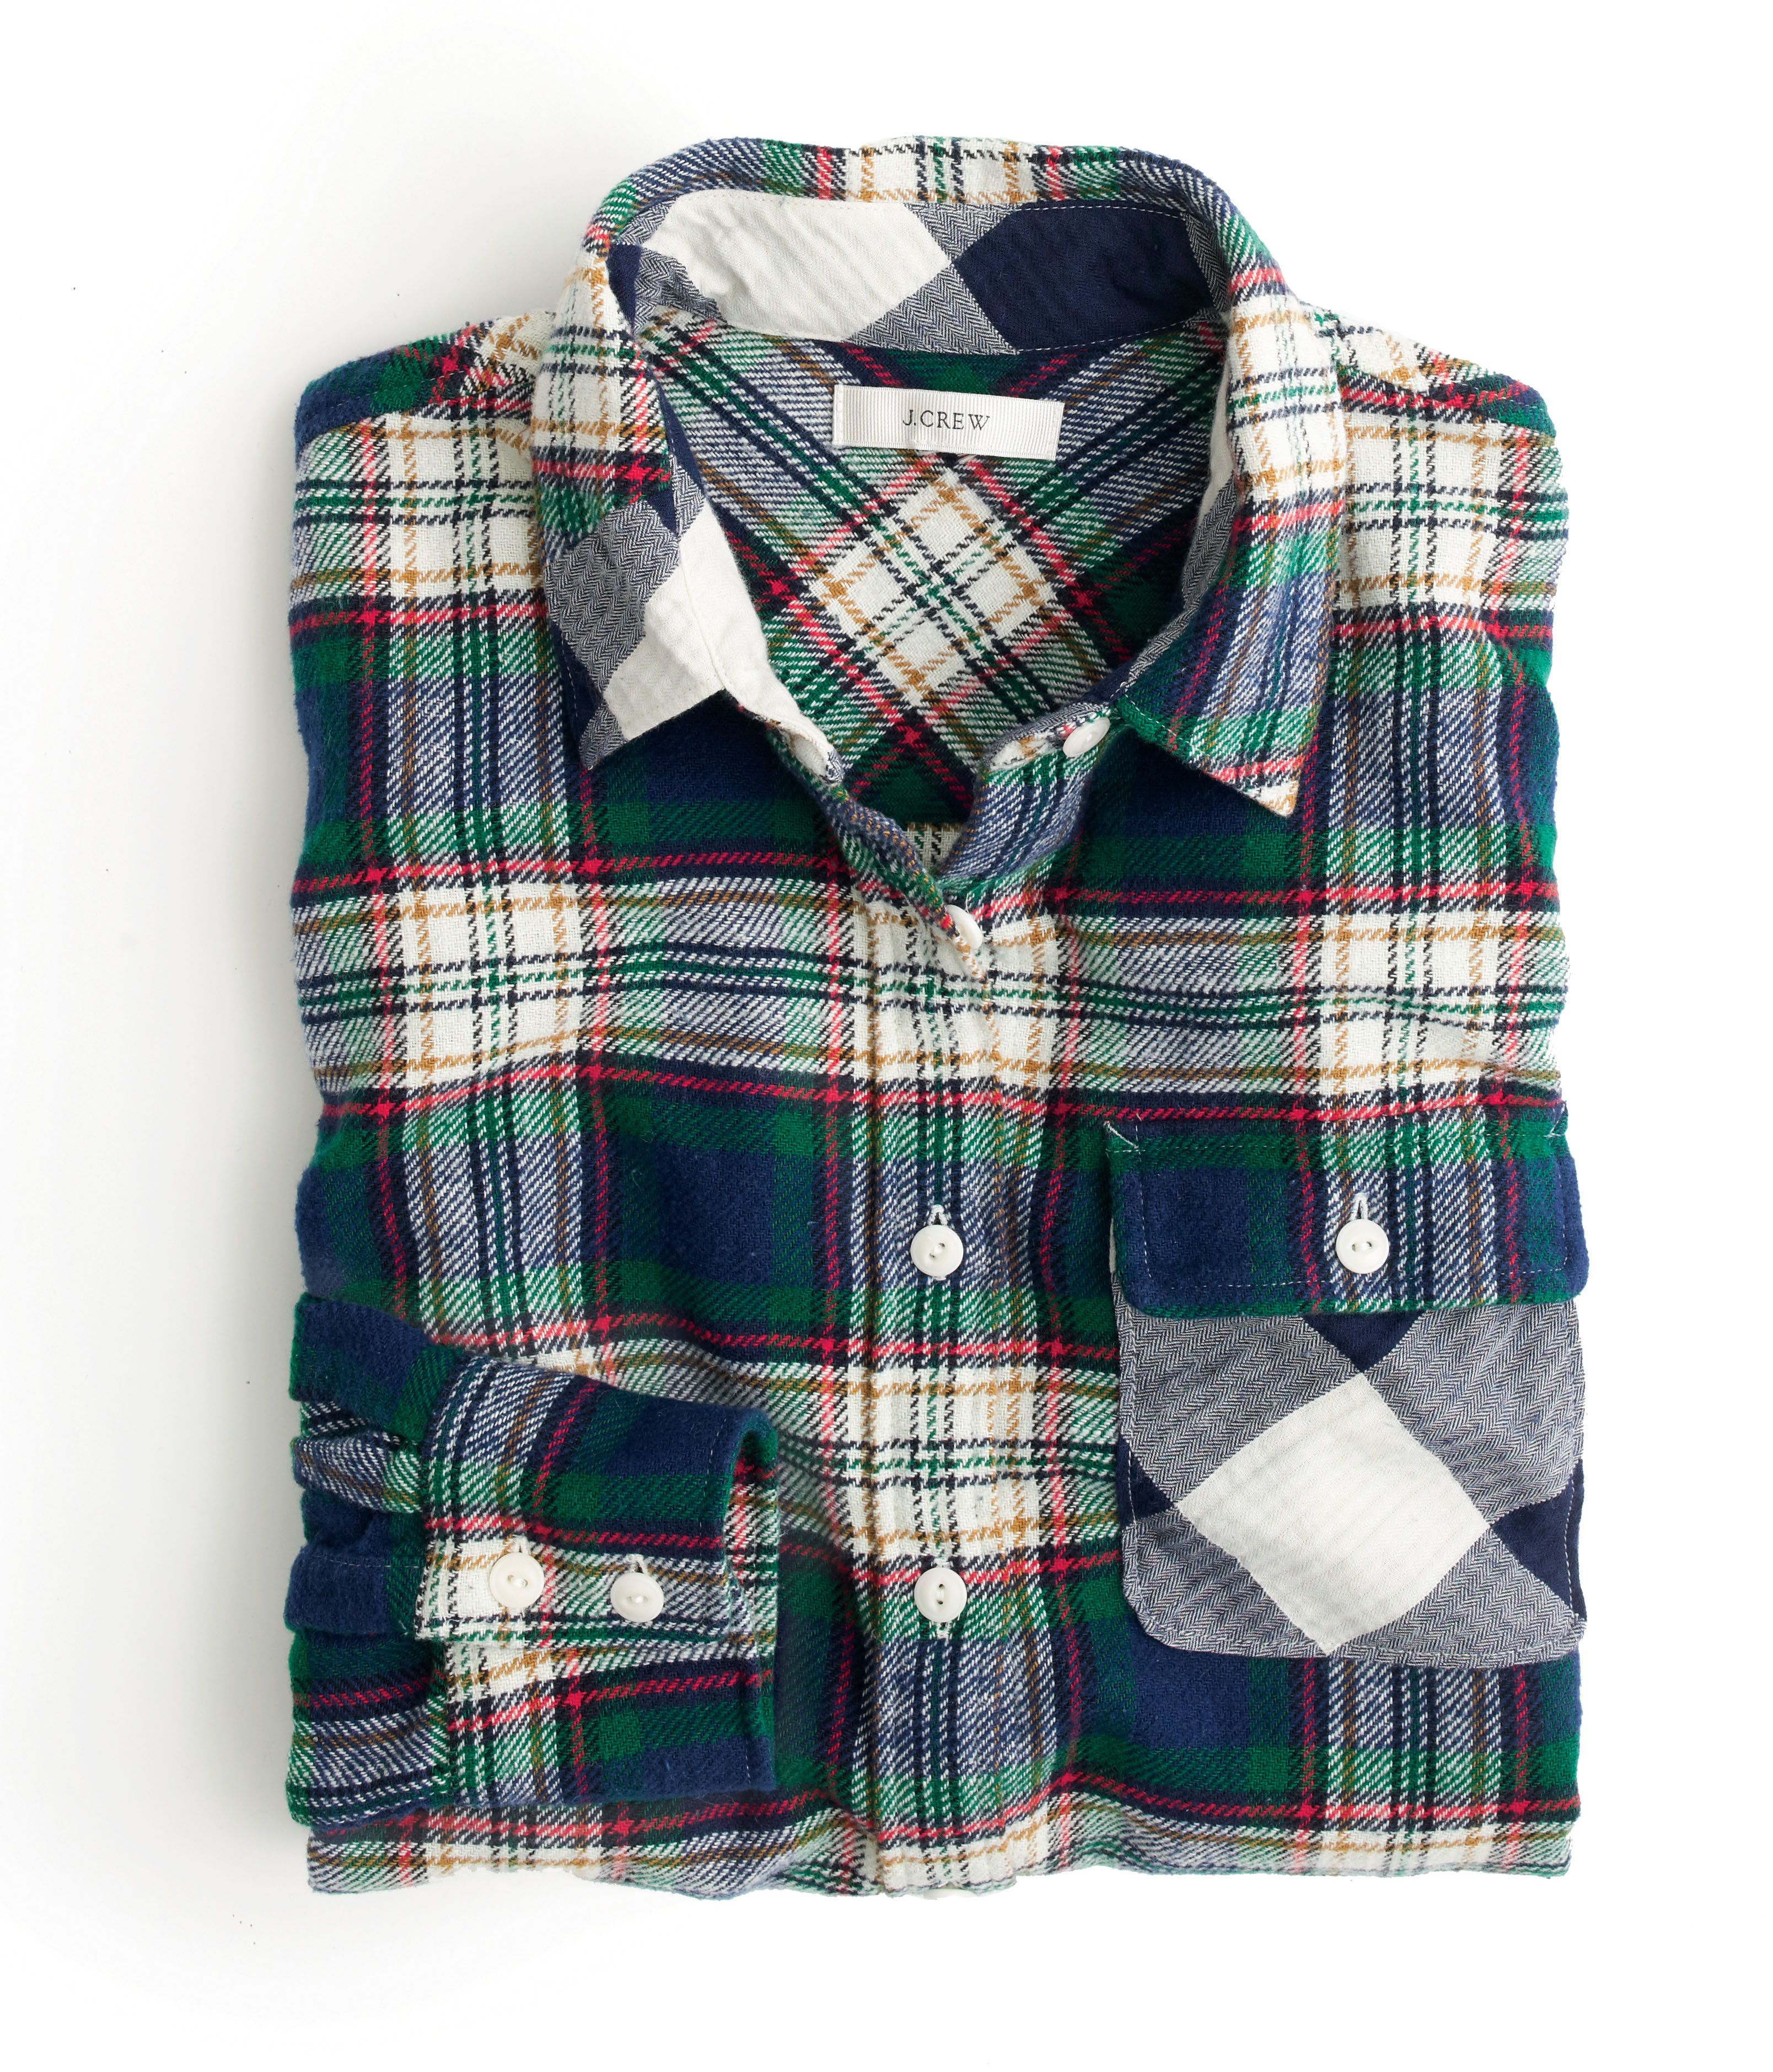 2bc27f68a1b01 Plaid is absolutely trending this season. We love this comfortable yet fashionable  style. Plaid jcrew warm shirt for fall fashion ...